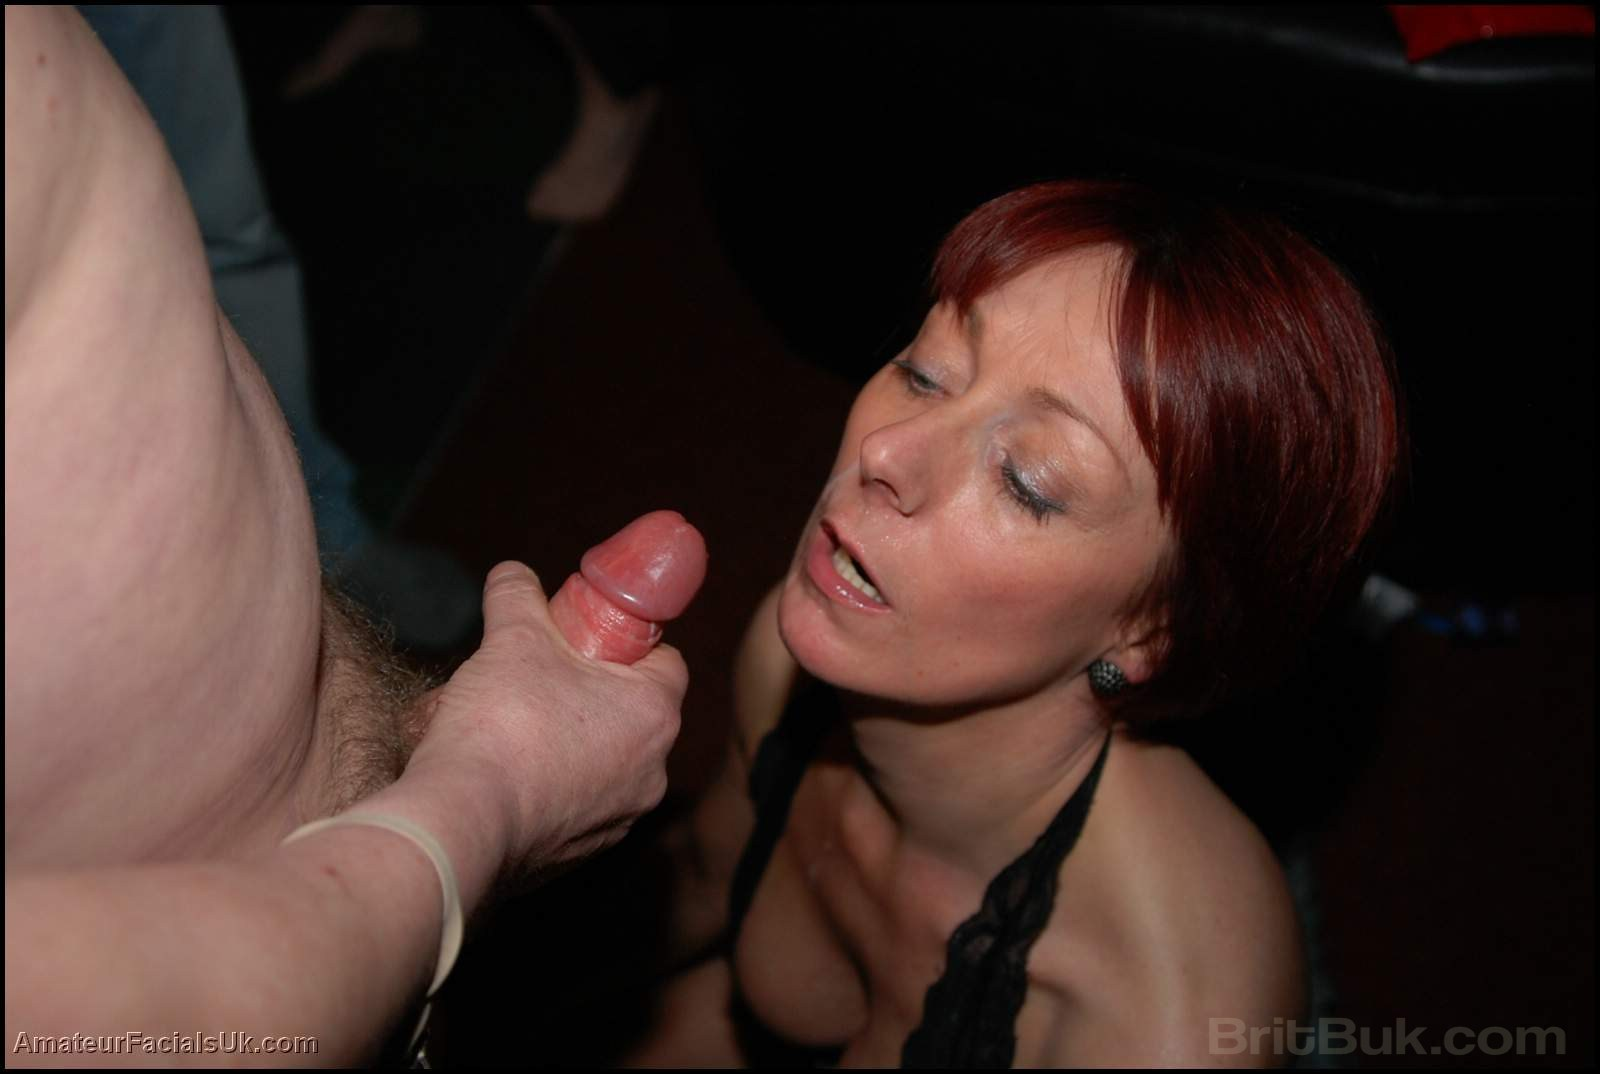 Rather cock swallowing queen